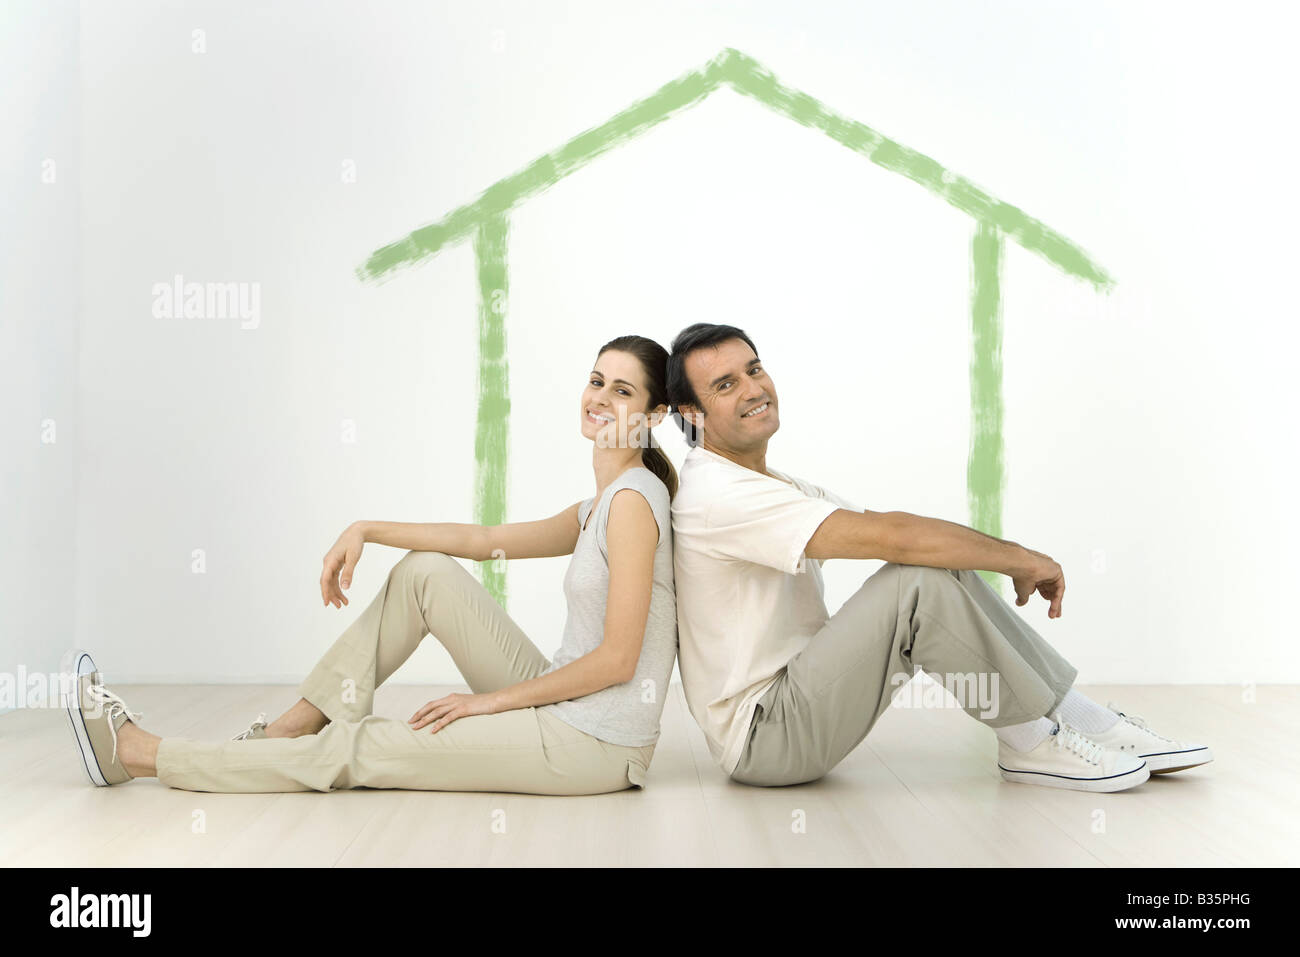 Couple Sitting Back To In Front Of An Outline A House Painted On Wall